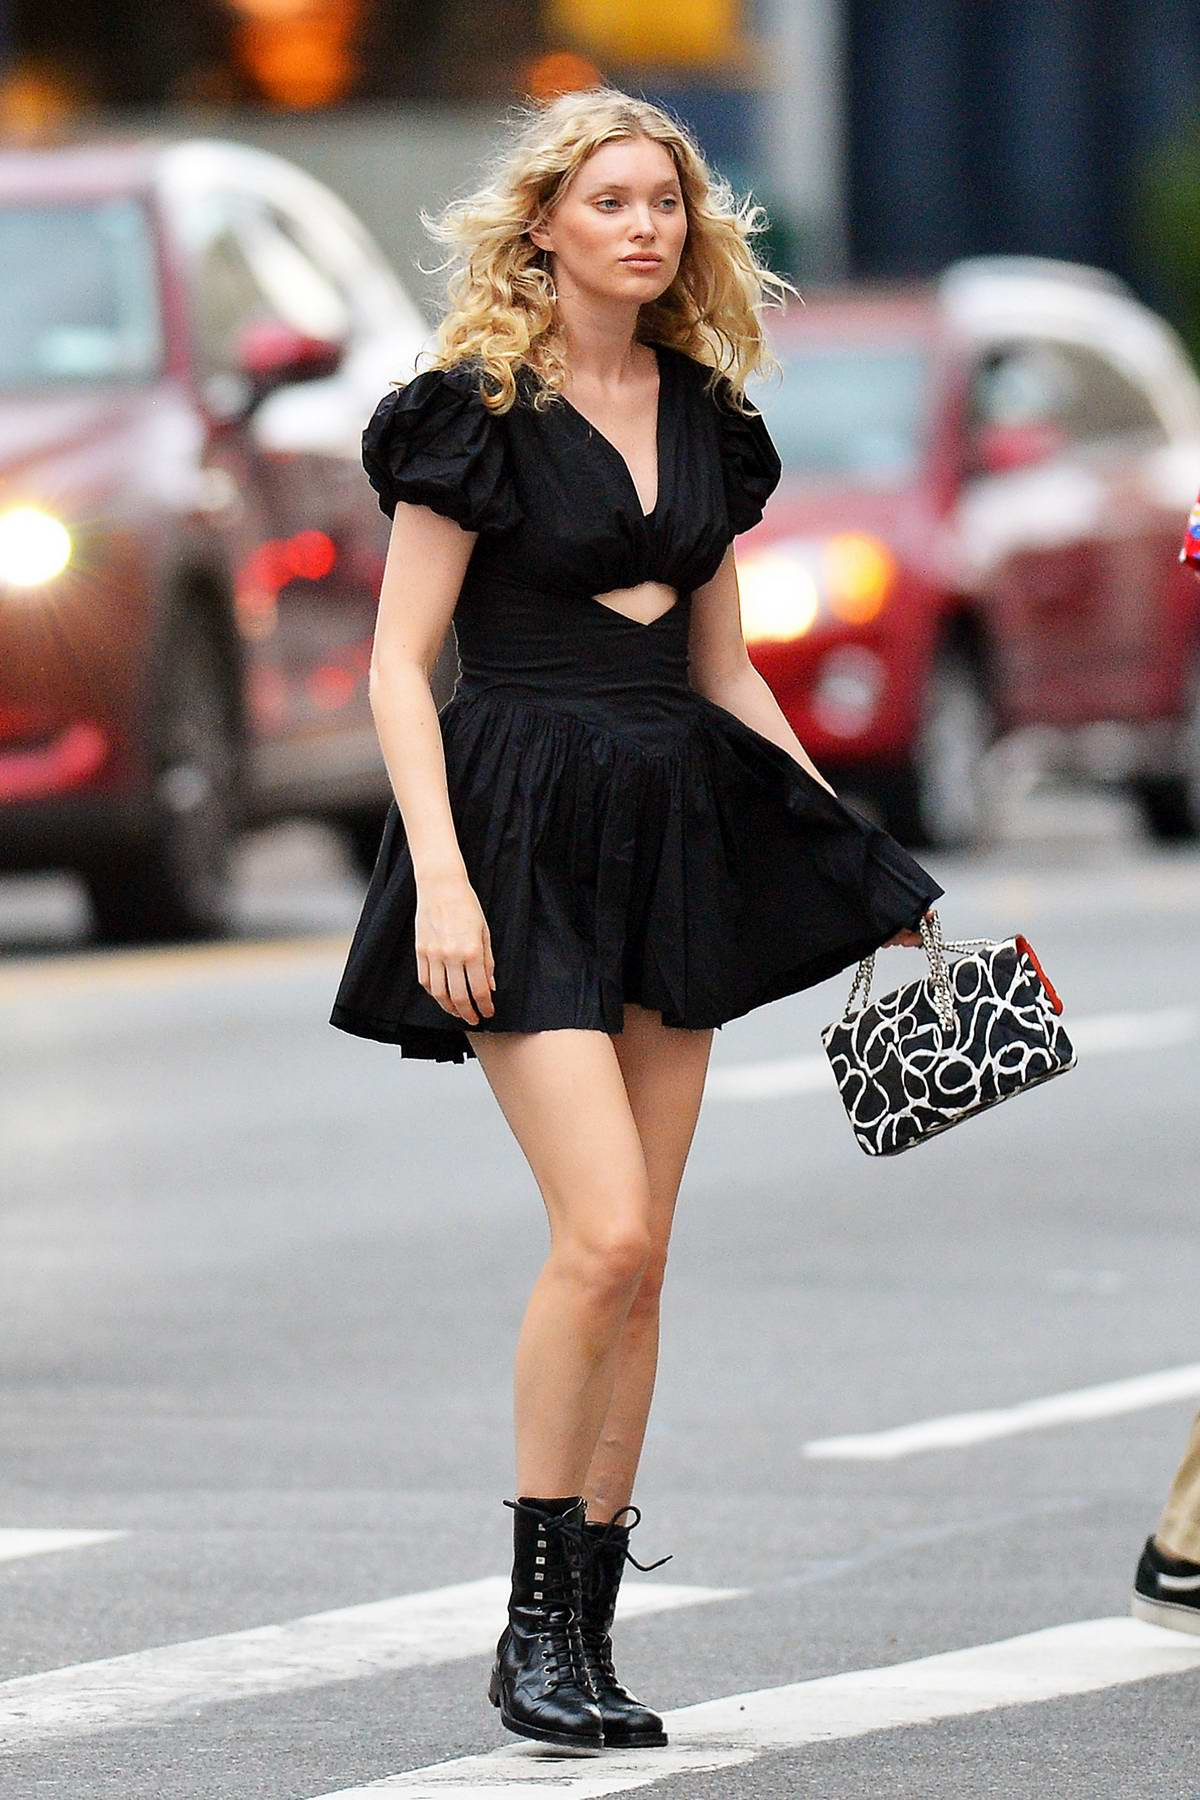 Elsa Hosk looks amazing in a black mini dress while out with Tom Daly in New York City